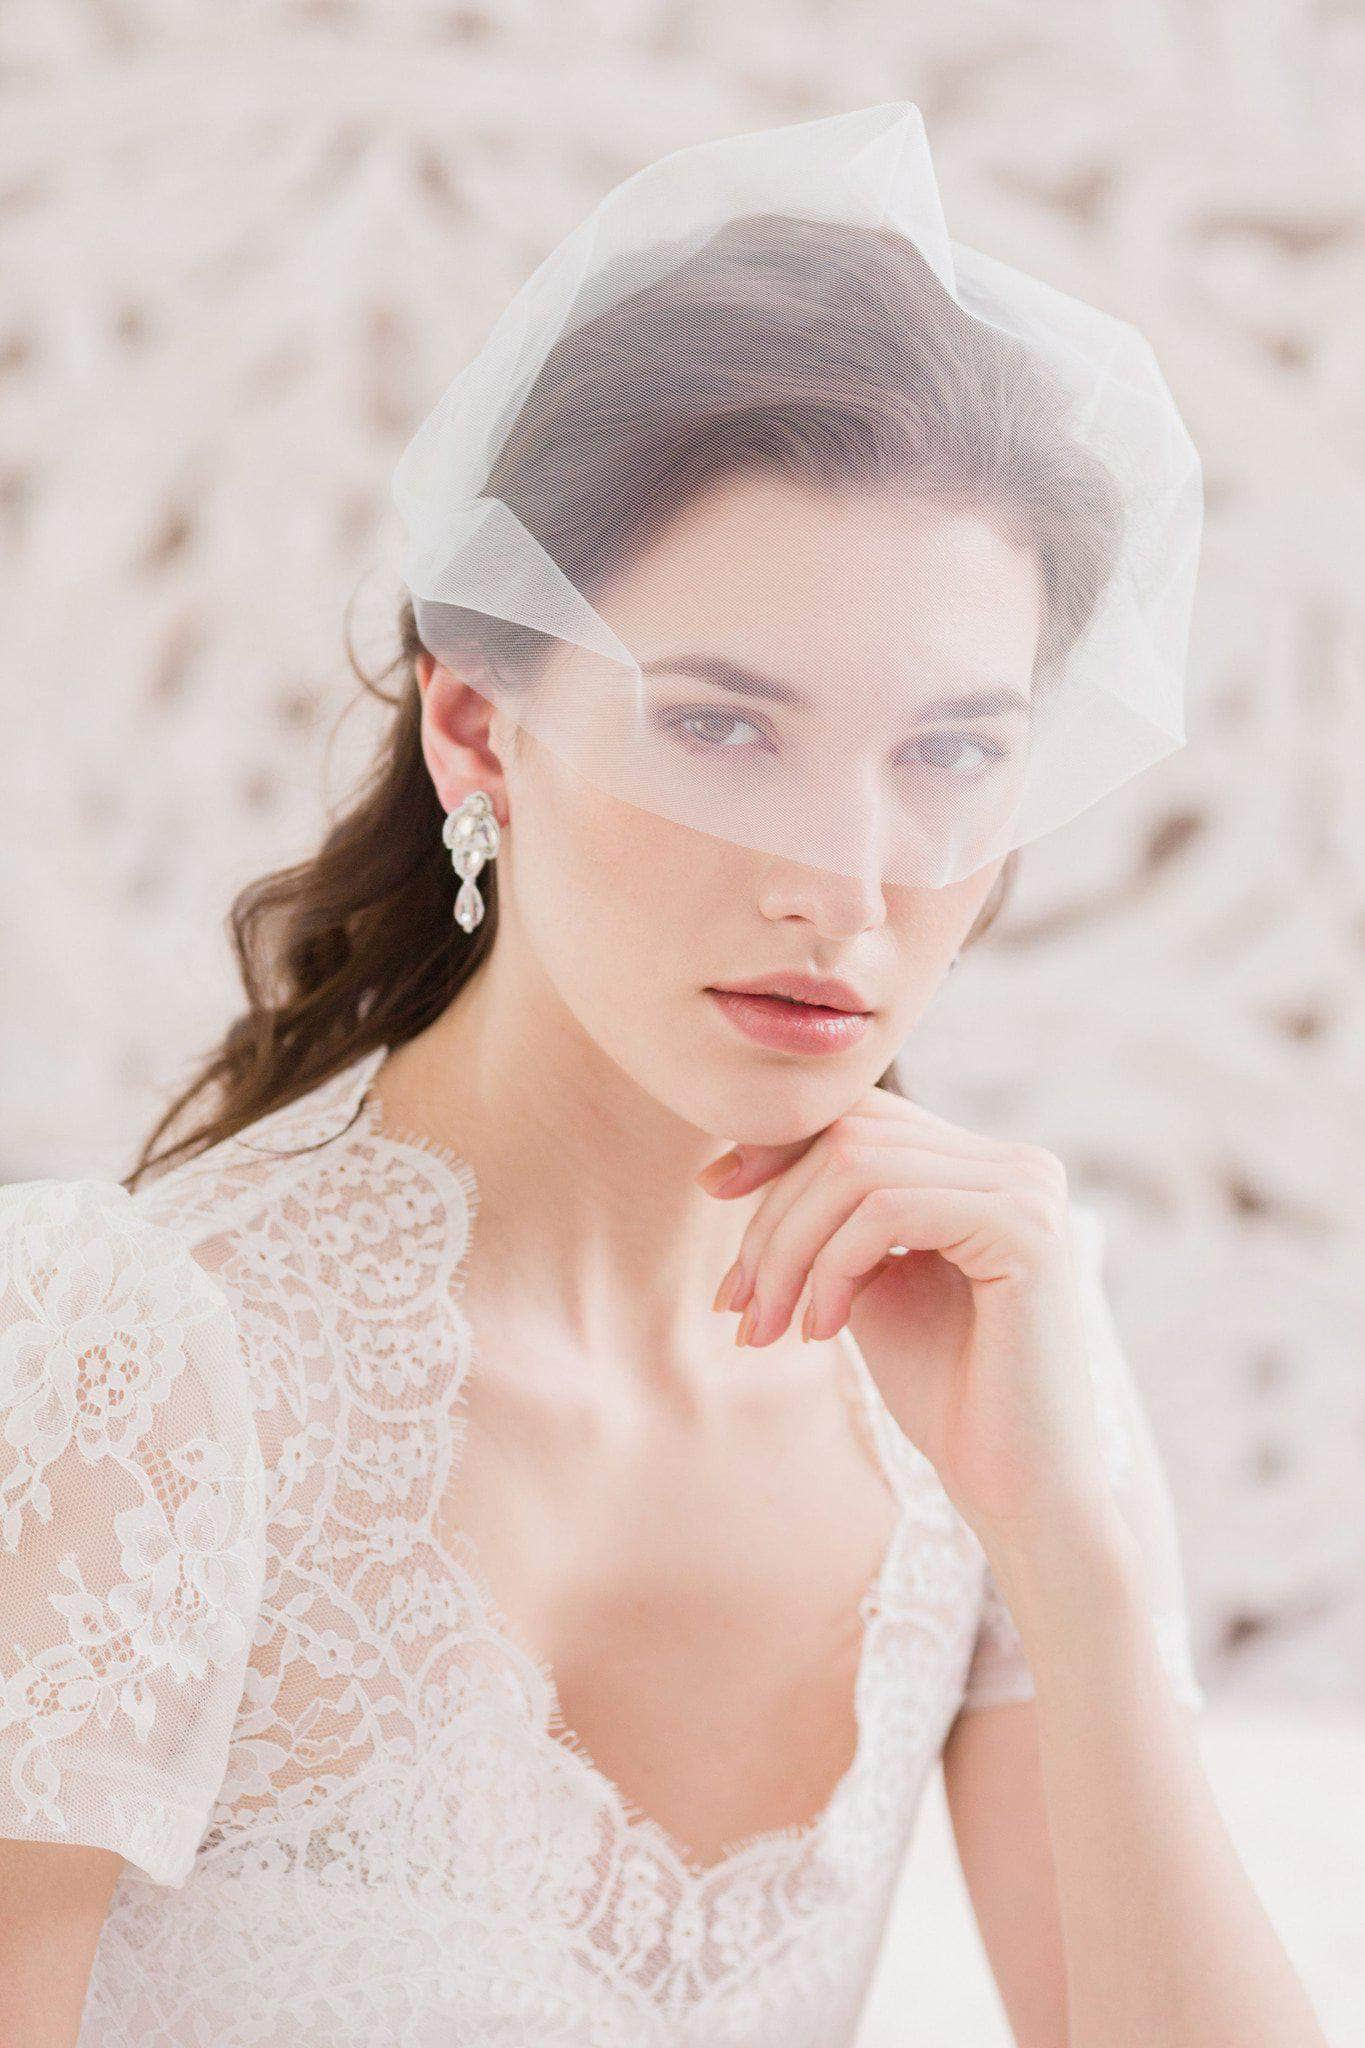 Bandeau wedding veil - 'Sabra' - Britten Weddings